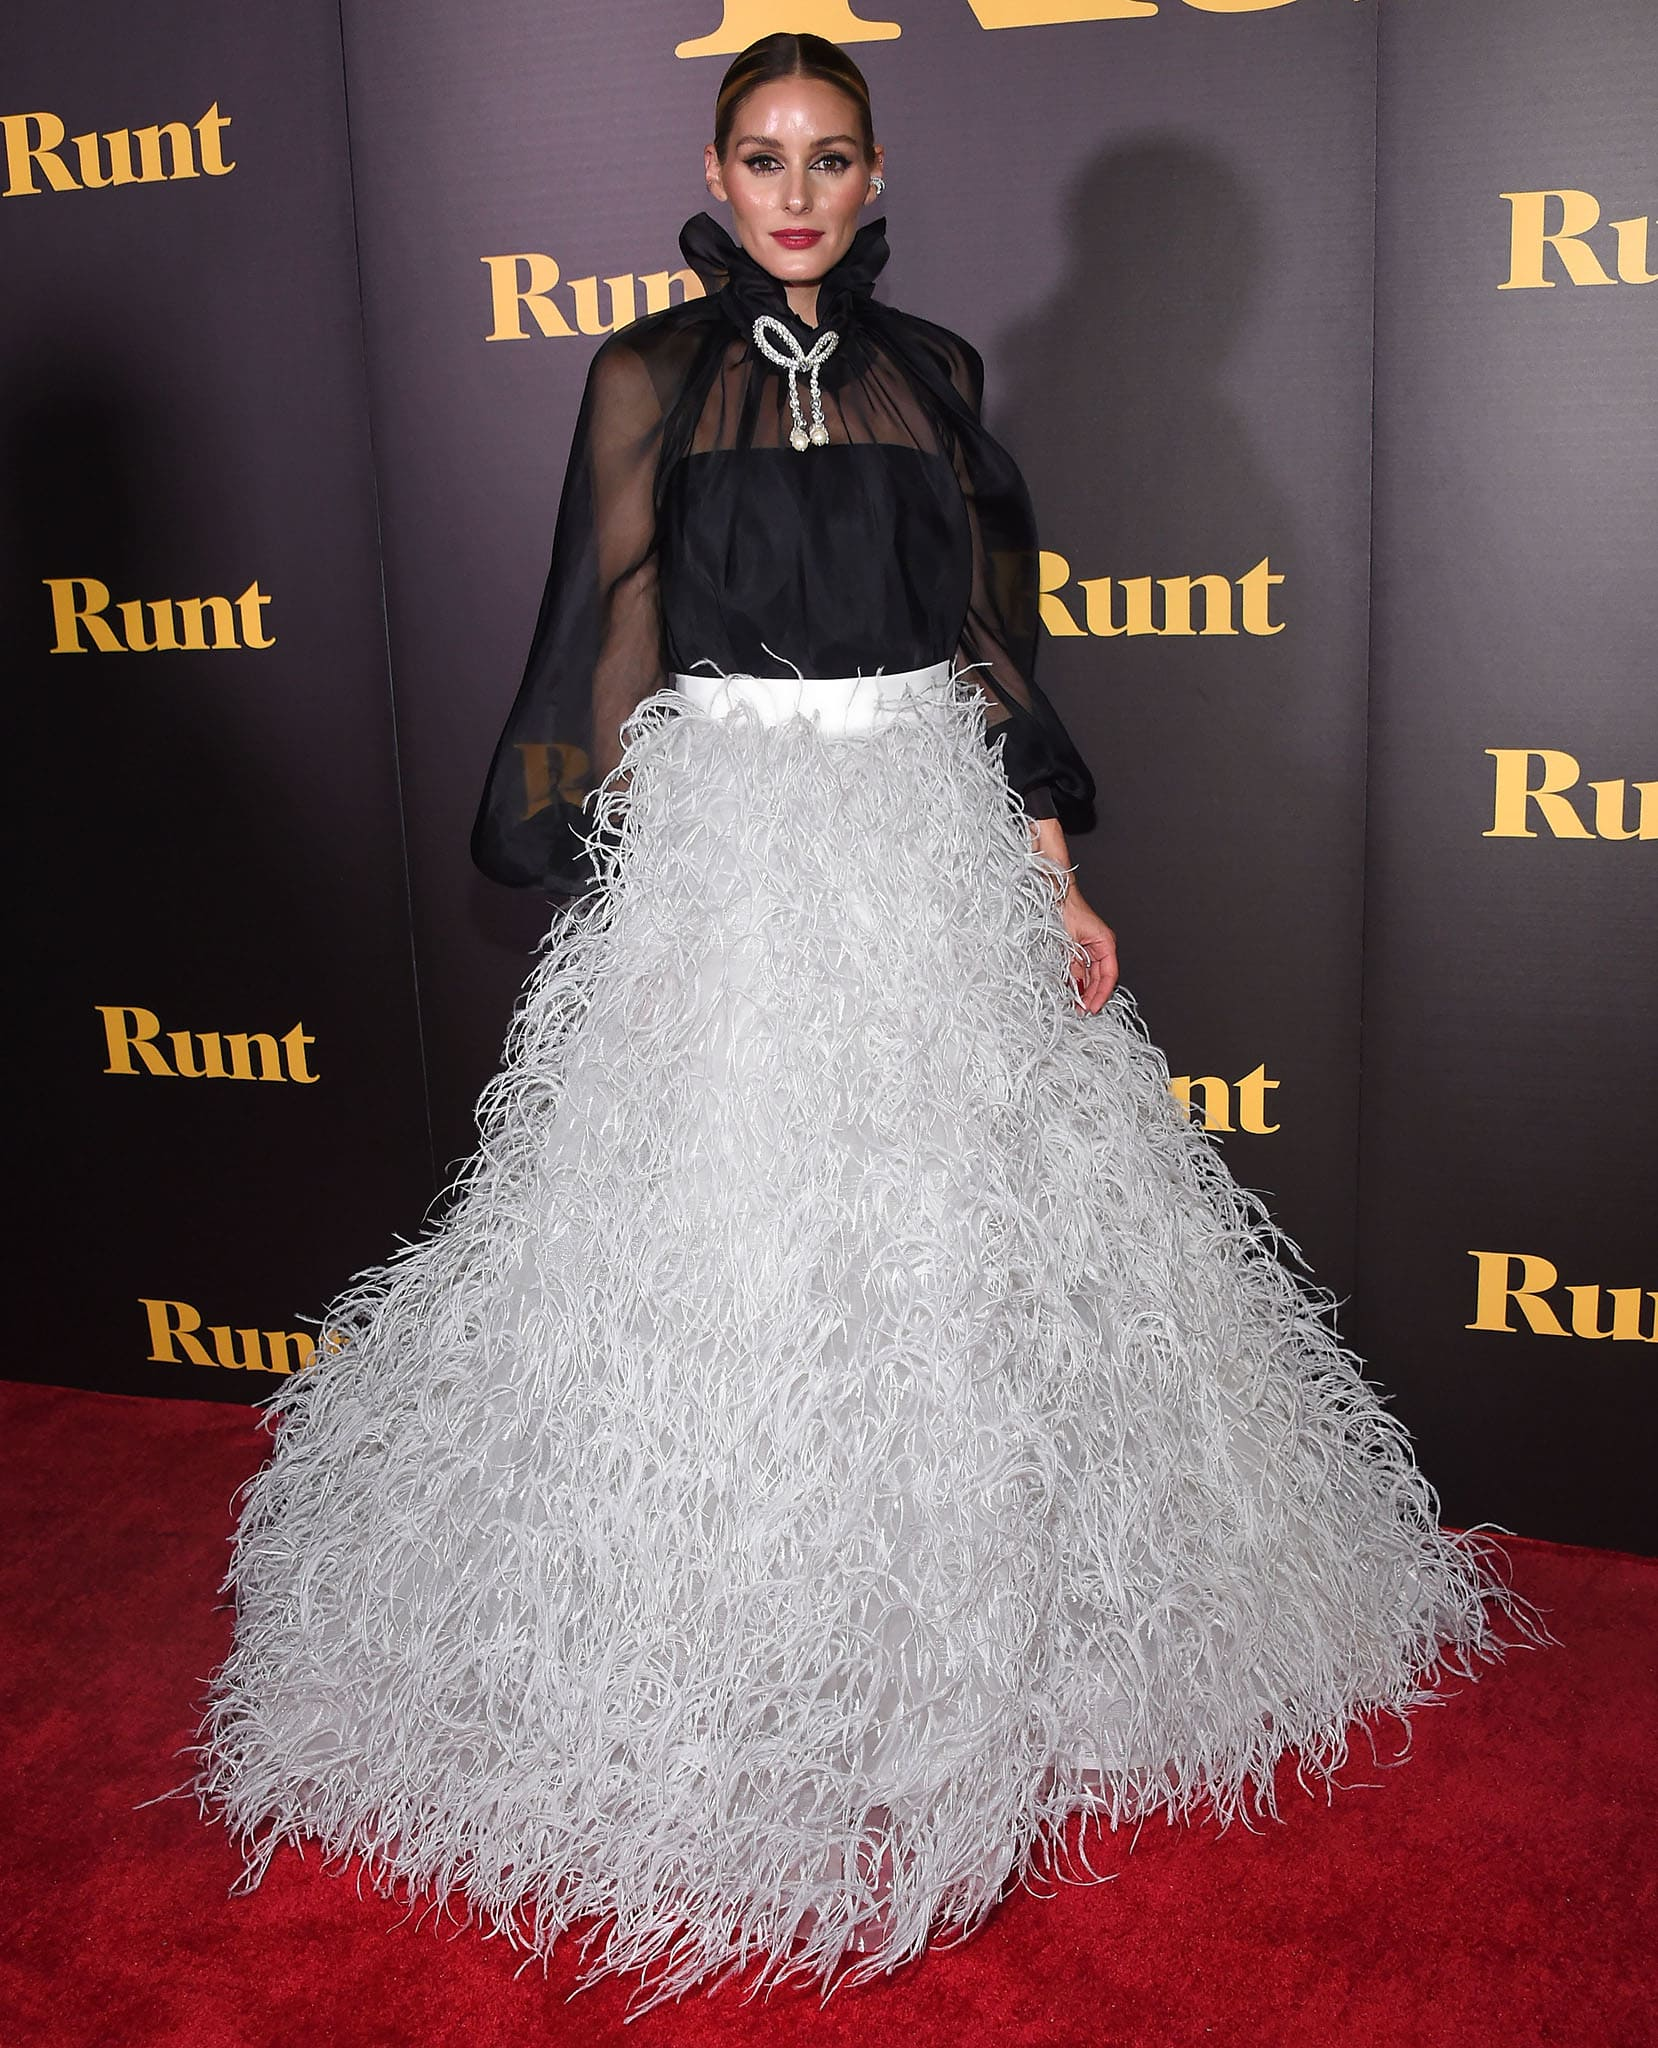 Olivia Palermo steals the spotlight in a two-piece Monique Lhuillier Spring 2022 look featuring a black sheer blouse and a white feathered ball gown skirt